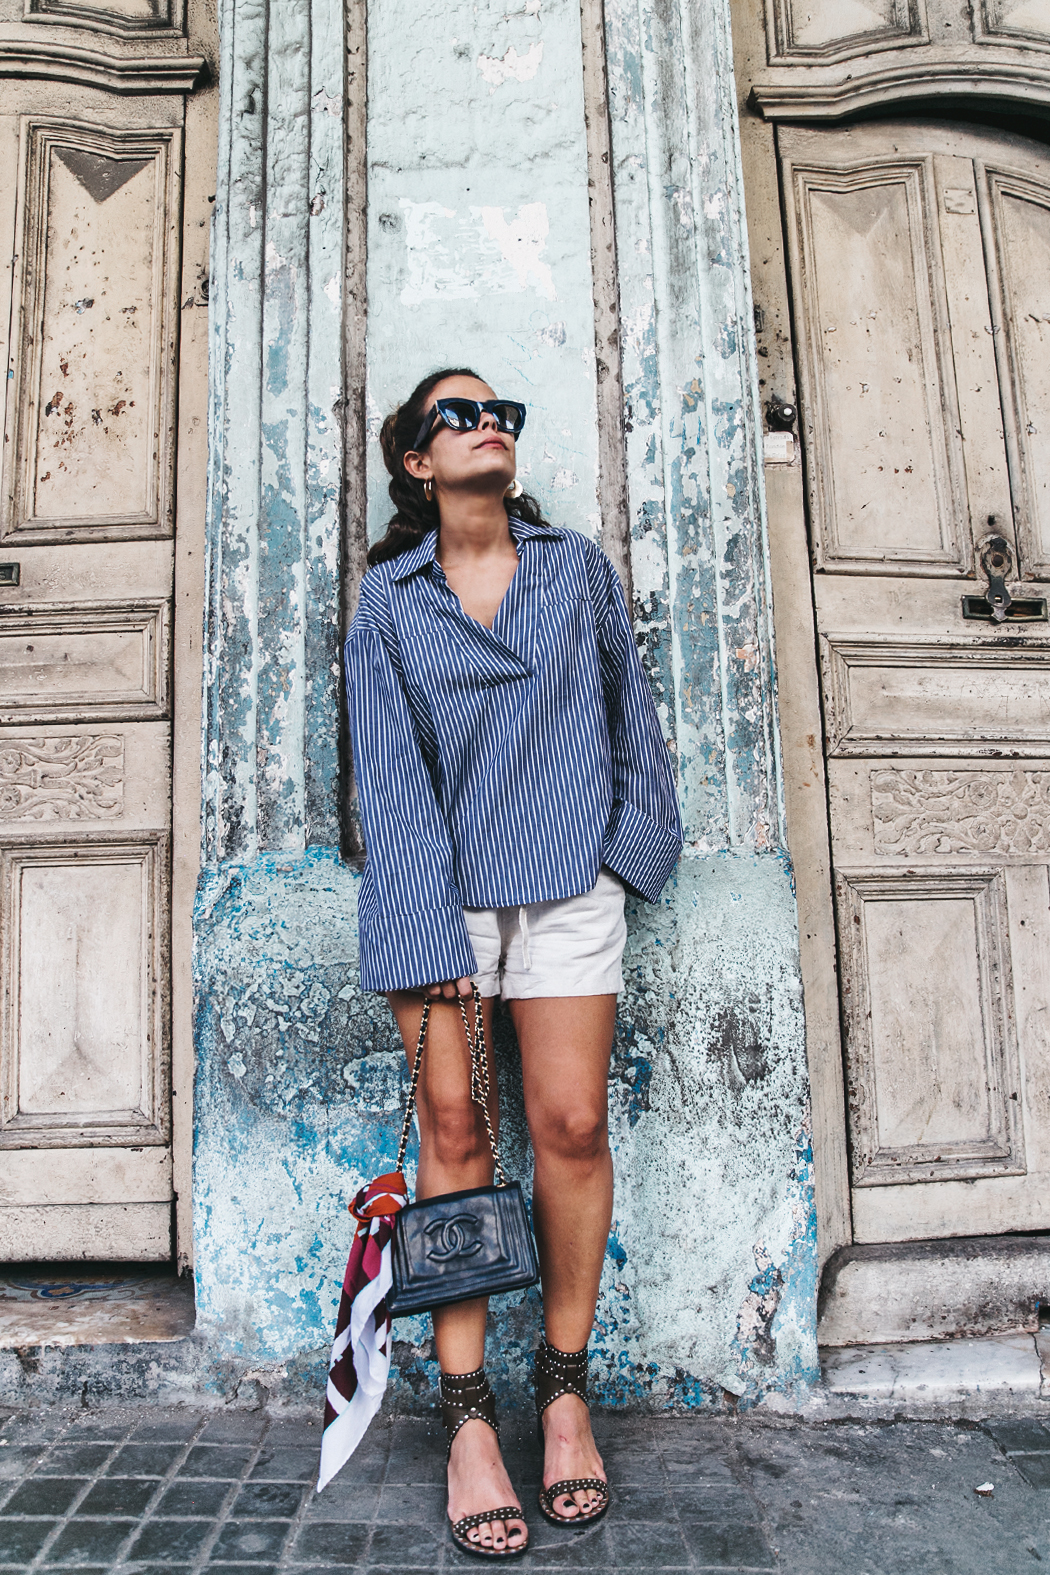 Cuba_La_habana-Striped_Blouse-Isabel_Marant_Shoes-Vintage_Chanel-Outfit-StreetStyle-2